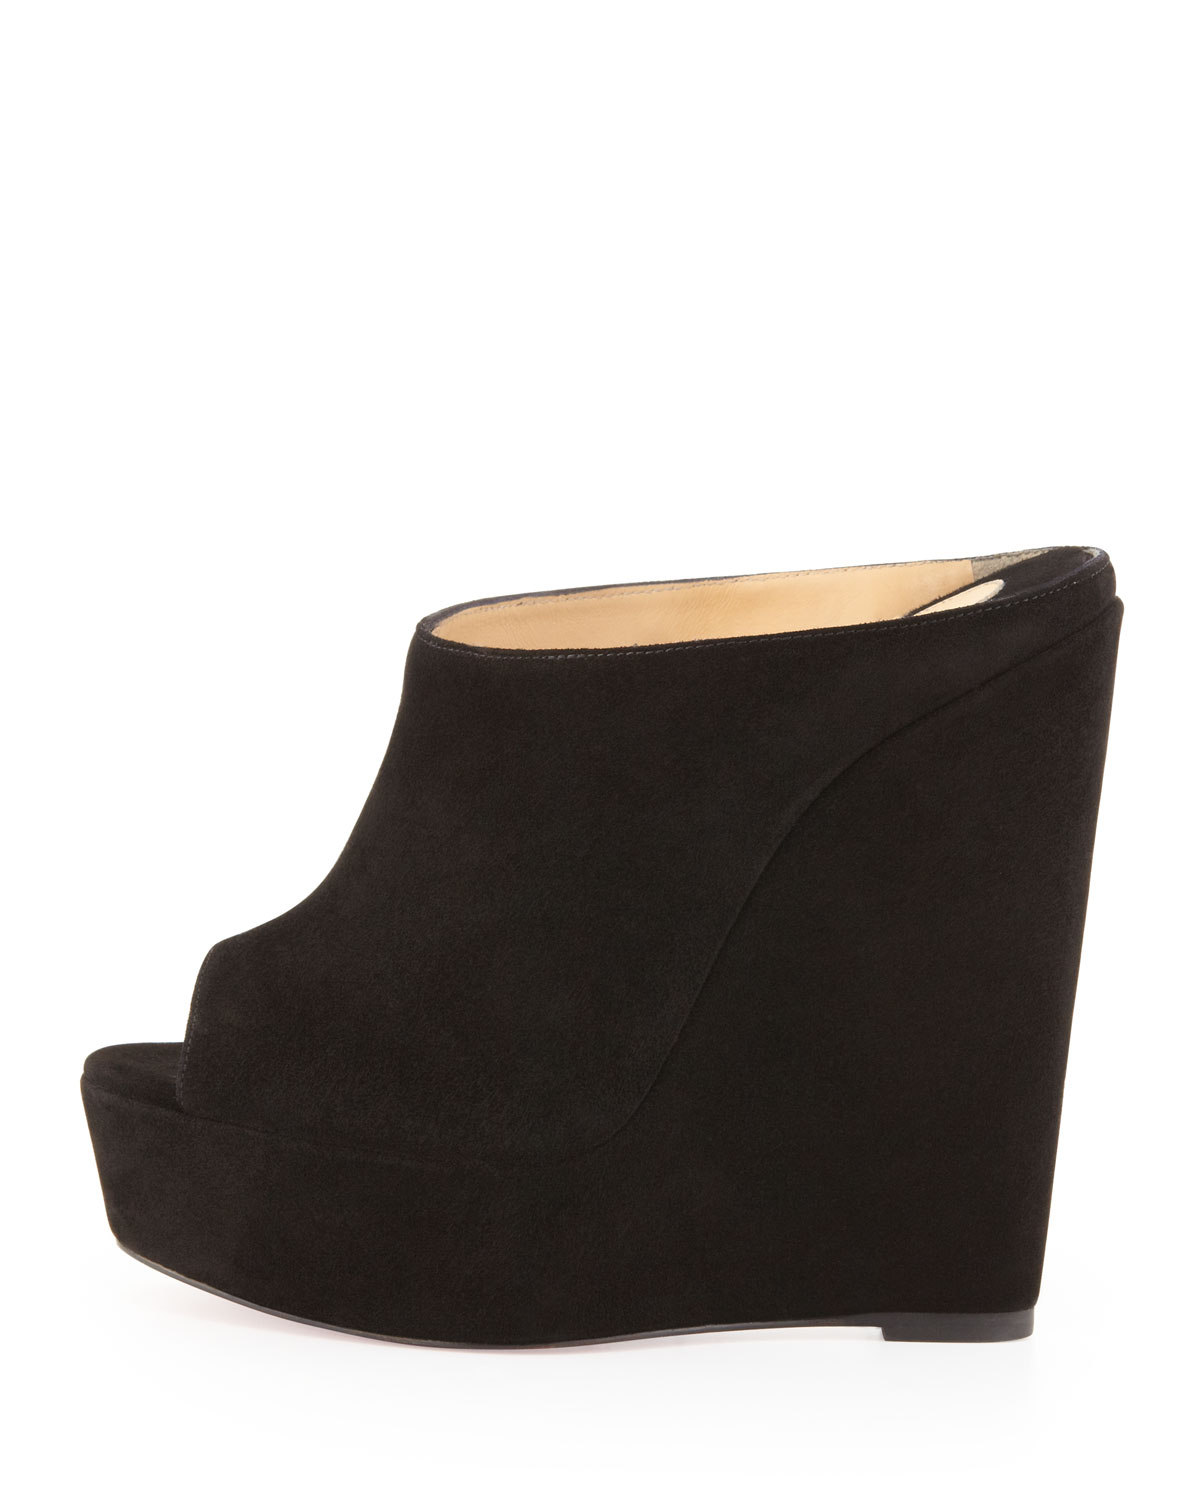 christian louboutin knock offs - christian louboutin slide espadrille wedges Black suede | The ...